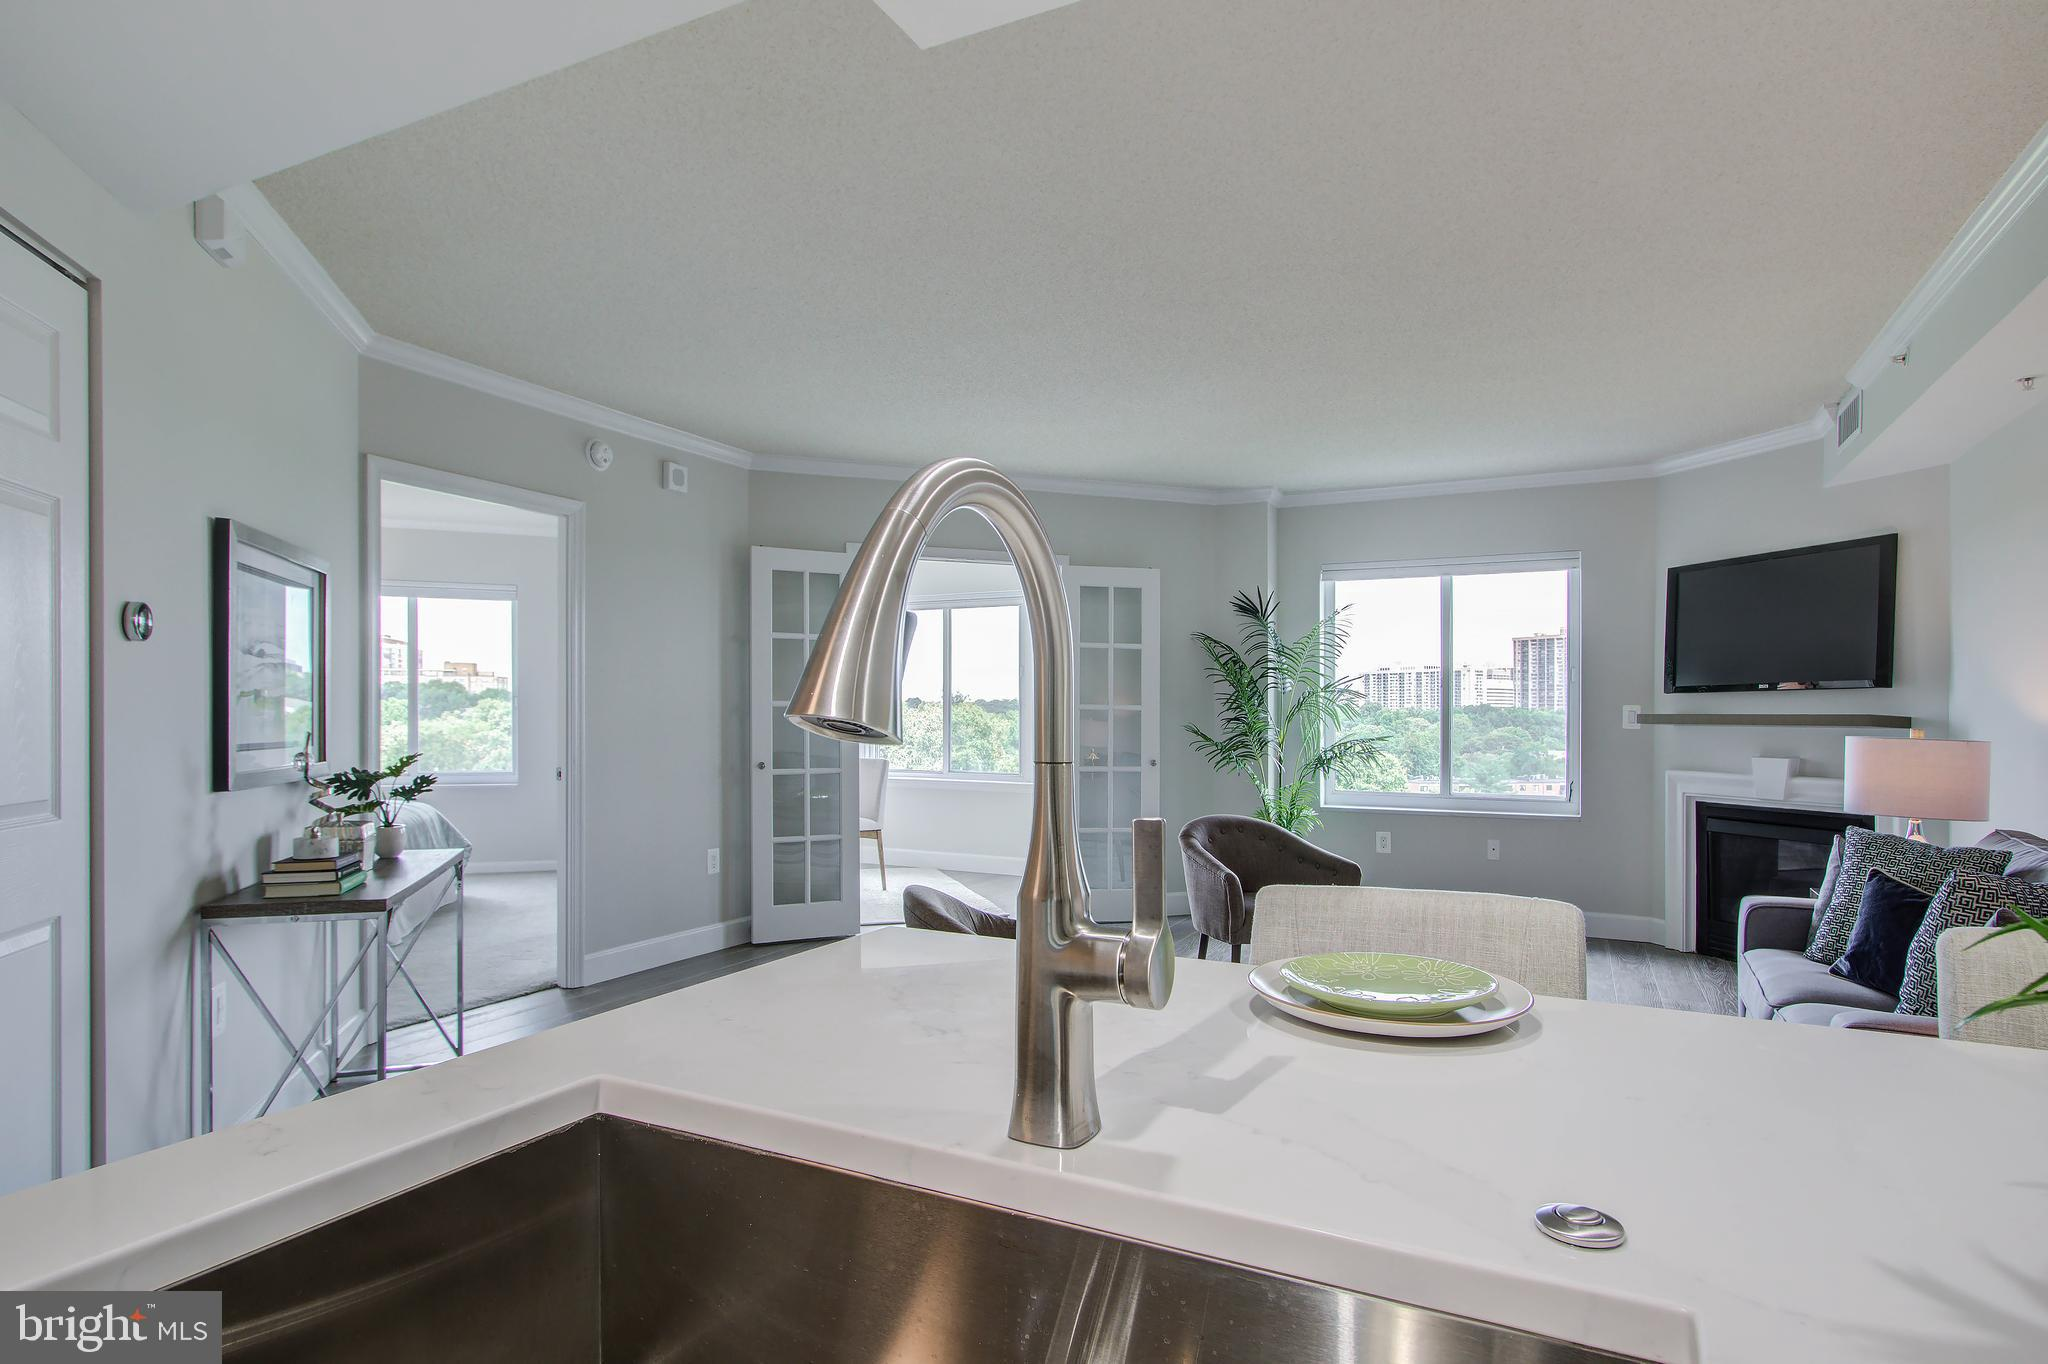 The best in its class...  stunning, chic and modern. This Luxury Collection 1-bed/1-bath with den is the first fully renovated 1-bedroom to be sold in the Northampton Place Community. With over $40K in renovations, this unit features an open floor plan and everything you've ever dreamed of! Starting with the beautiful and durable next generation Torino White Oak wire brushed water-resistant engineered hardwood flooring installed in the entry, kitchen and living areas coordinating with the modern gray-tone wall paint used throughout. Moving to the gourmet kitchen: refinished/refreshed kitchen cabinets with added soft close doors are complemented by a beautiful quartz countertop, Adessi Zellige pearl opal polished ceramic tile backsplash, Lyric stainless steel large single bowl sink with SilentShield sound absorption technology and Kohler Rubicon single-handle faucet. The appliances have been replaced with high-end fingerprint resistant stainless steel type from the Frigidaire Gallery Collection. The  kitchen update package is completed with a top-of-the-line sound reducing technology 3/4 HP continuous feed garbage disposal. The den design features French doors and  breathtaking panoramic windows making it a perfect space for working or lounging. And the den and living room window blinds have been replaced with new Bali light filtering top-down bottom-up cellular shades for optimum light, plus privacy. We've even added provisions in the living room which allows you the option of locating your TV above the fireplace. In the bedroom we've added new quality Shaw stain-resistant carpet and a Bali blackout top-down bottom-up cellular shade to the window. To maximize space utilization, bedroom and coat closets include Elfa organization systems. Moving to the bathroom - it has been renovated with new porcelain floor and wall tile, Carrara marble countertop, modern fixtures and a new Kohler soaking tub. We've even added a new LED light above the tub. But wait - we're not done